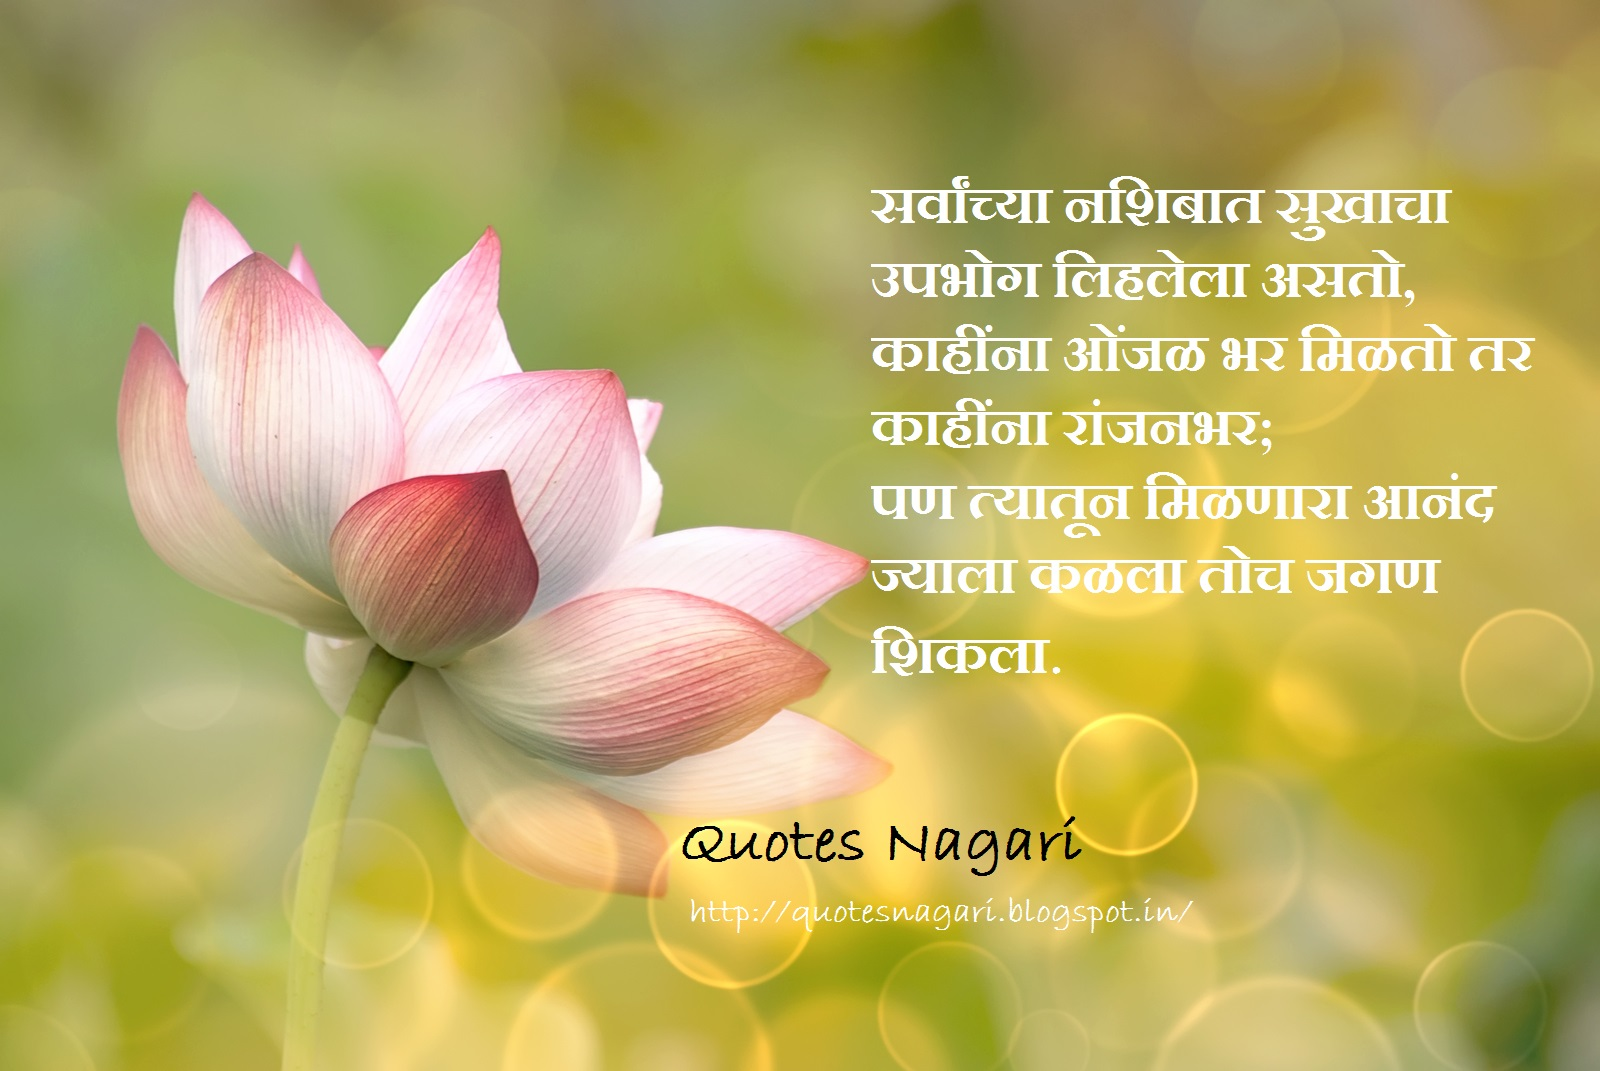 Inspirational Quotes Quotes Nagari